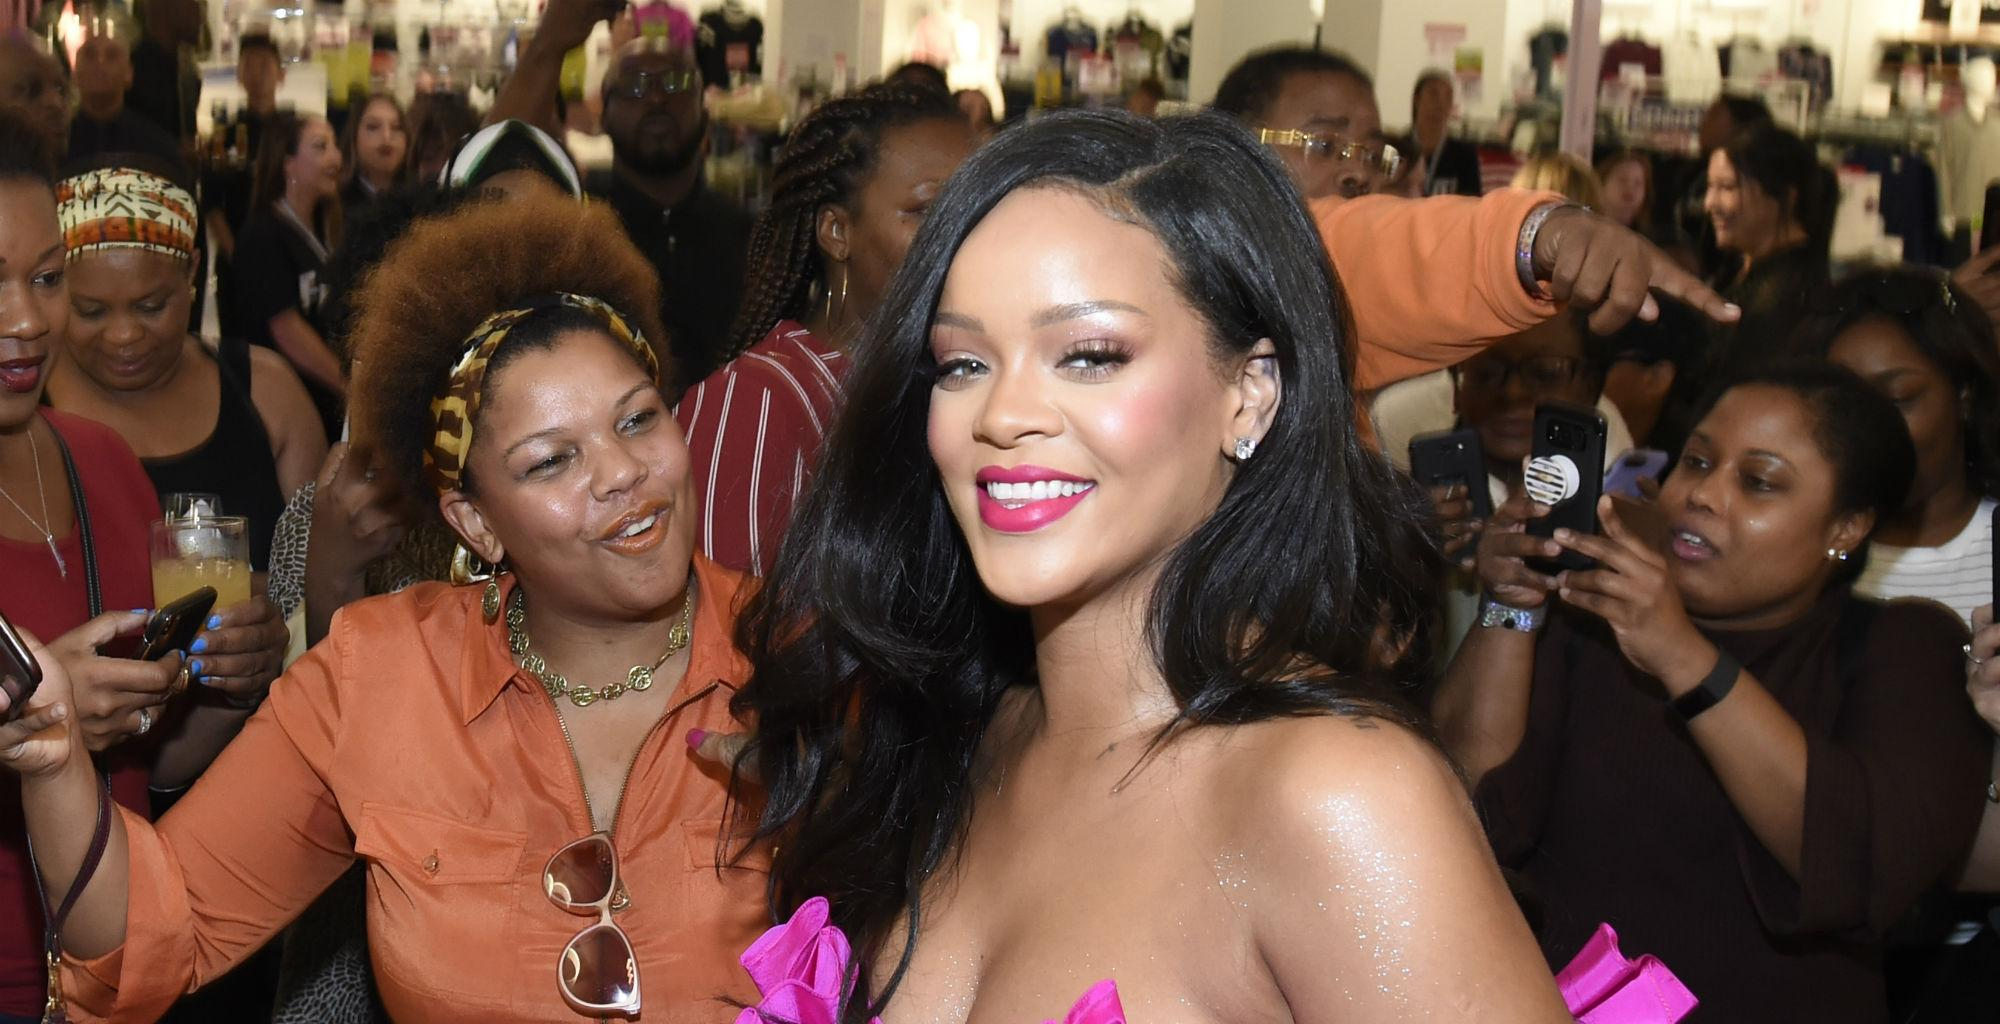 Rihanna's Fans Are Rooting For Her To Be The Next Black Woman Billionaire - People Compare Her To Kylie Jenner